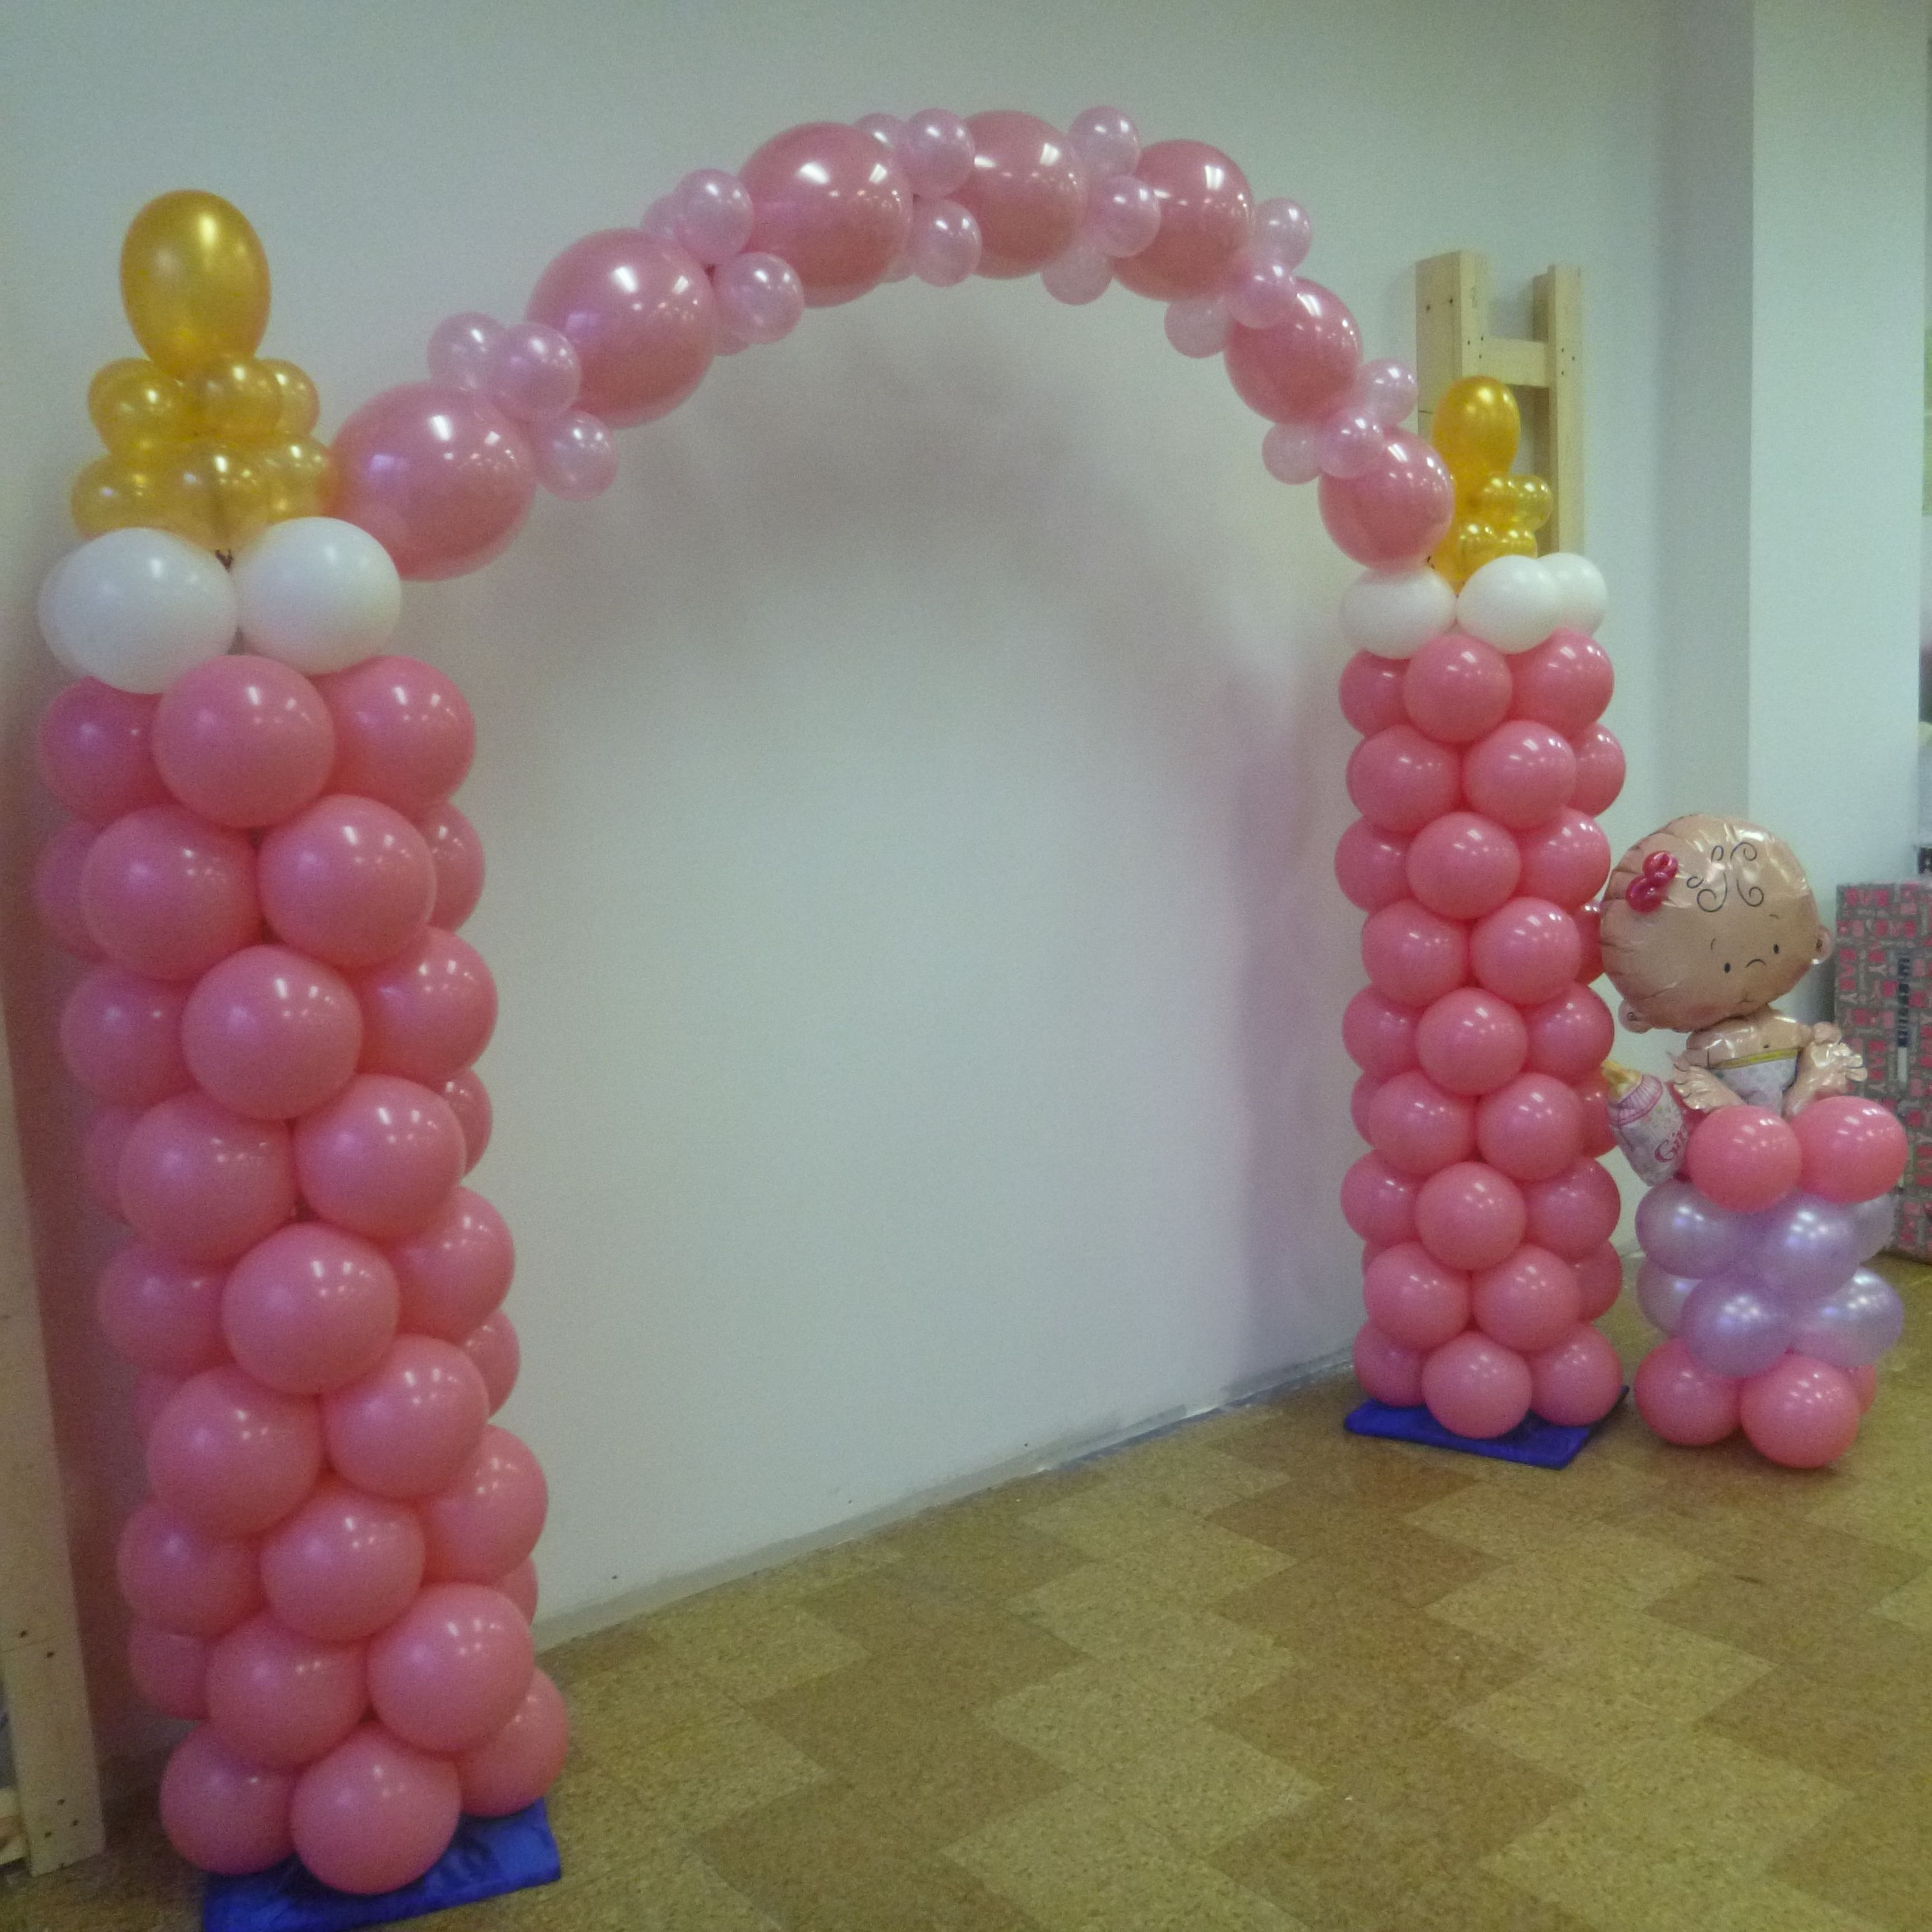 Rosielloons baby shower balloons decor pinterest for Balloon decoration for a baby shower